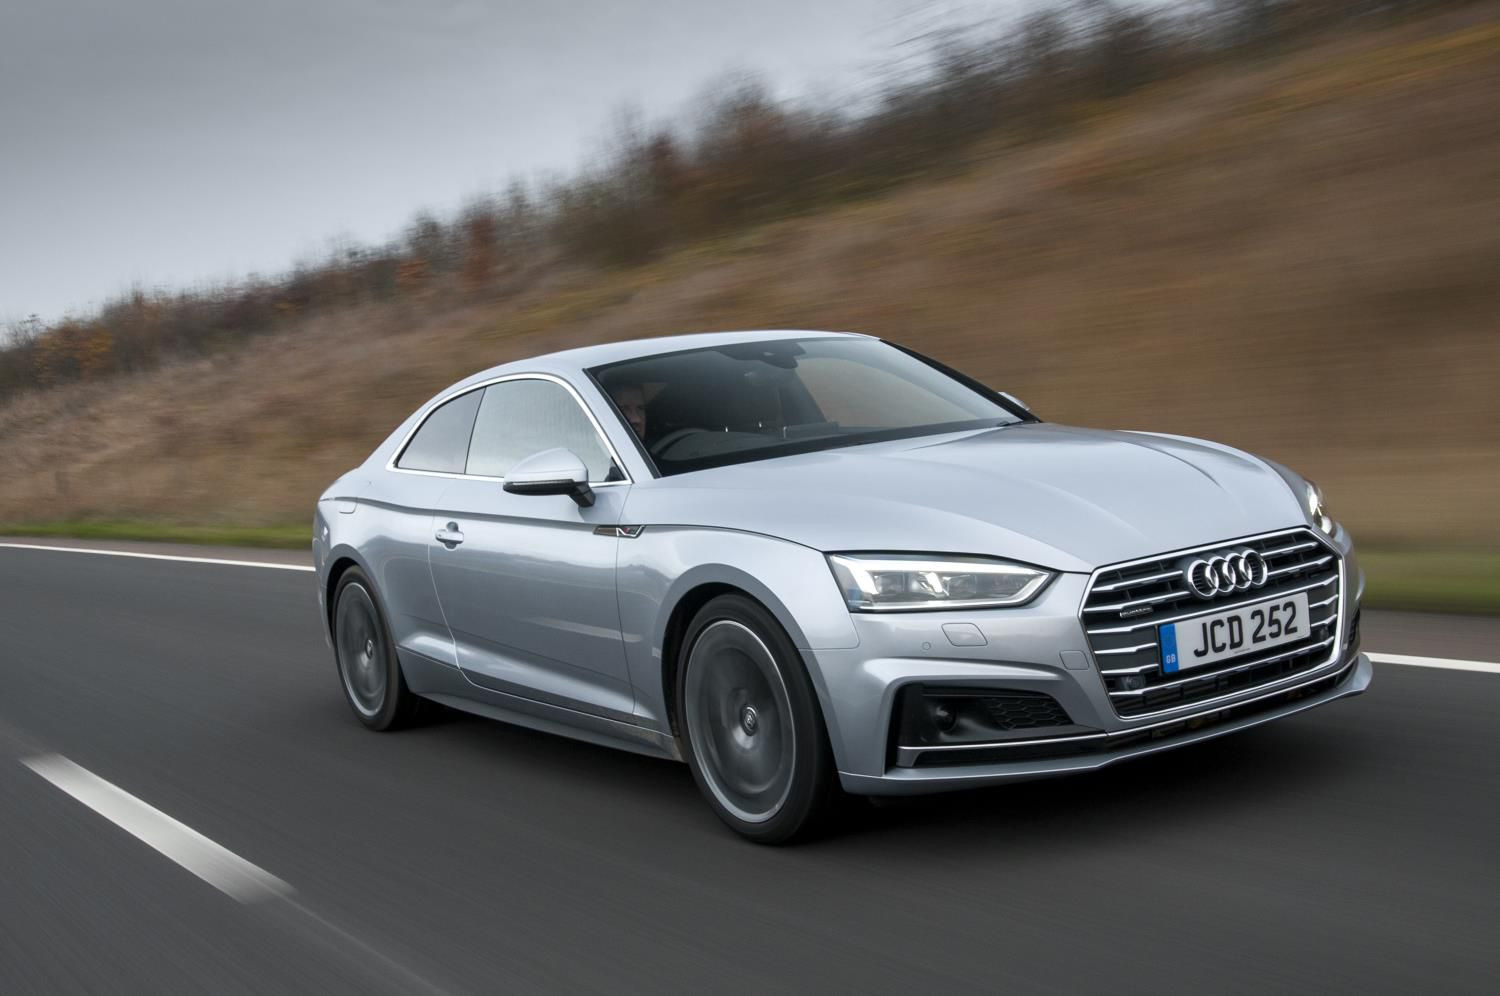 Silver Audi A5 coupe driving towards you at speed